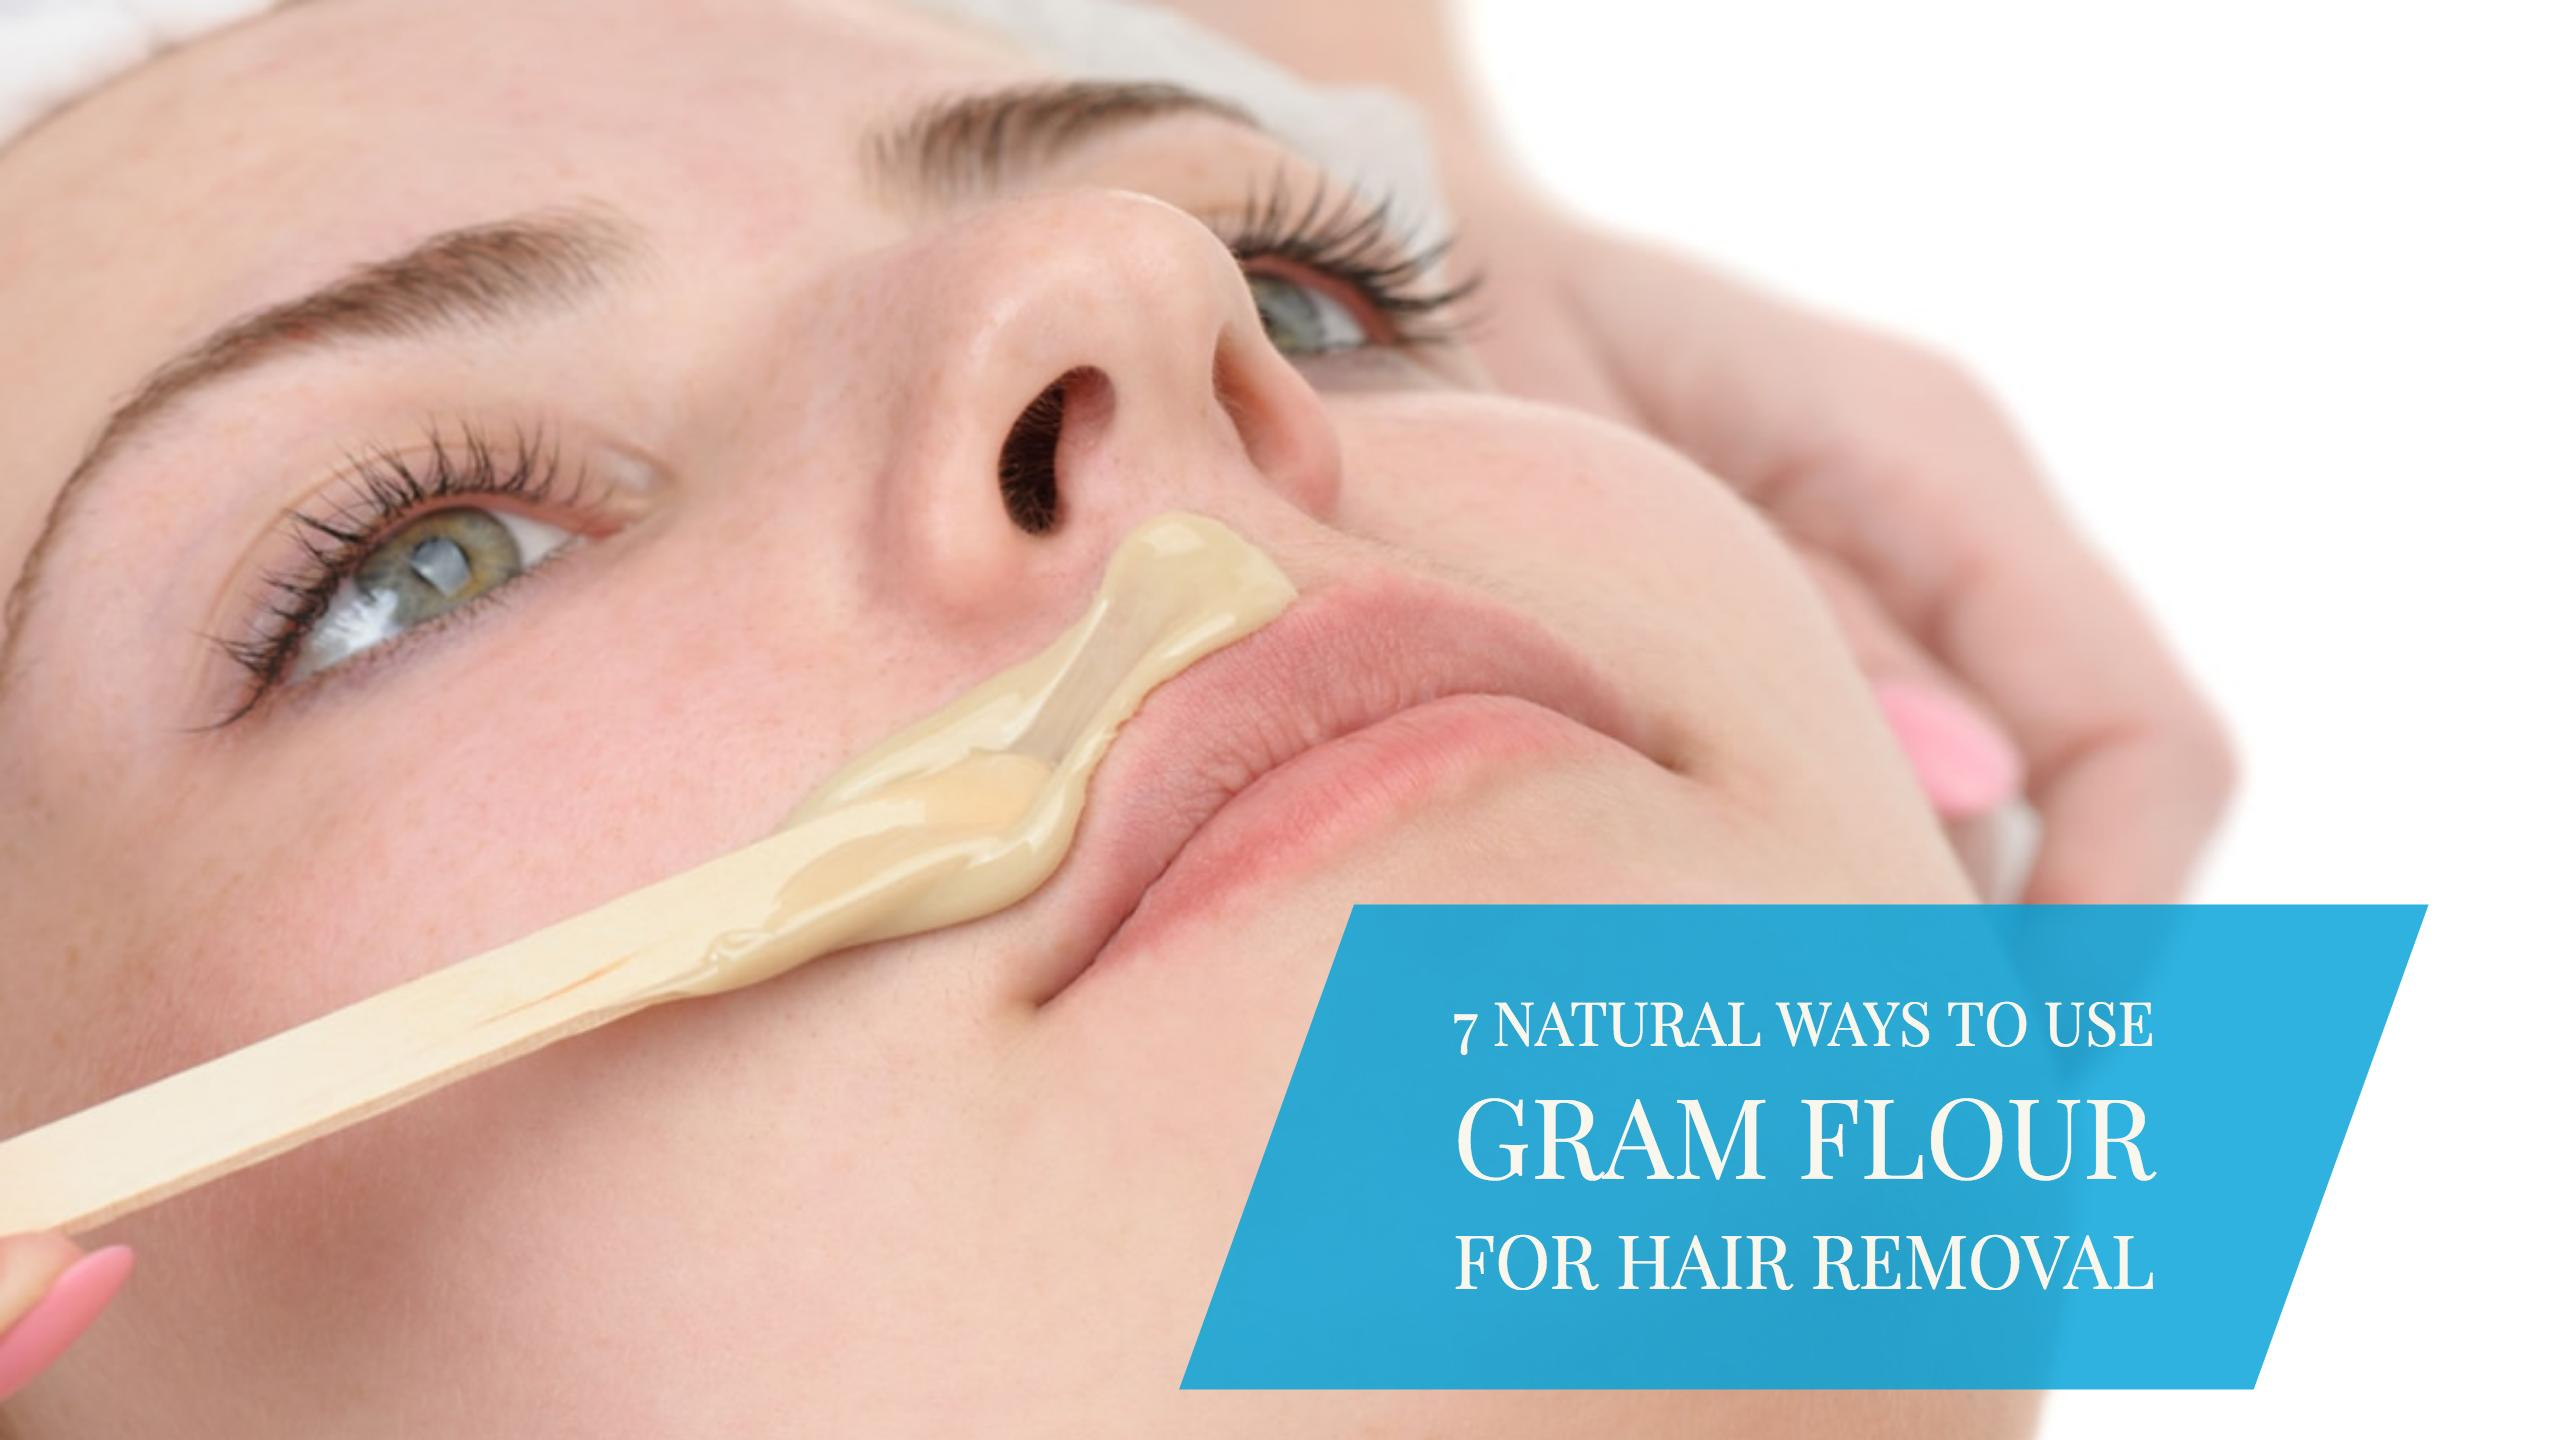 7 Natural Ways To Use Gram Flour For Hair Removal